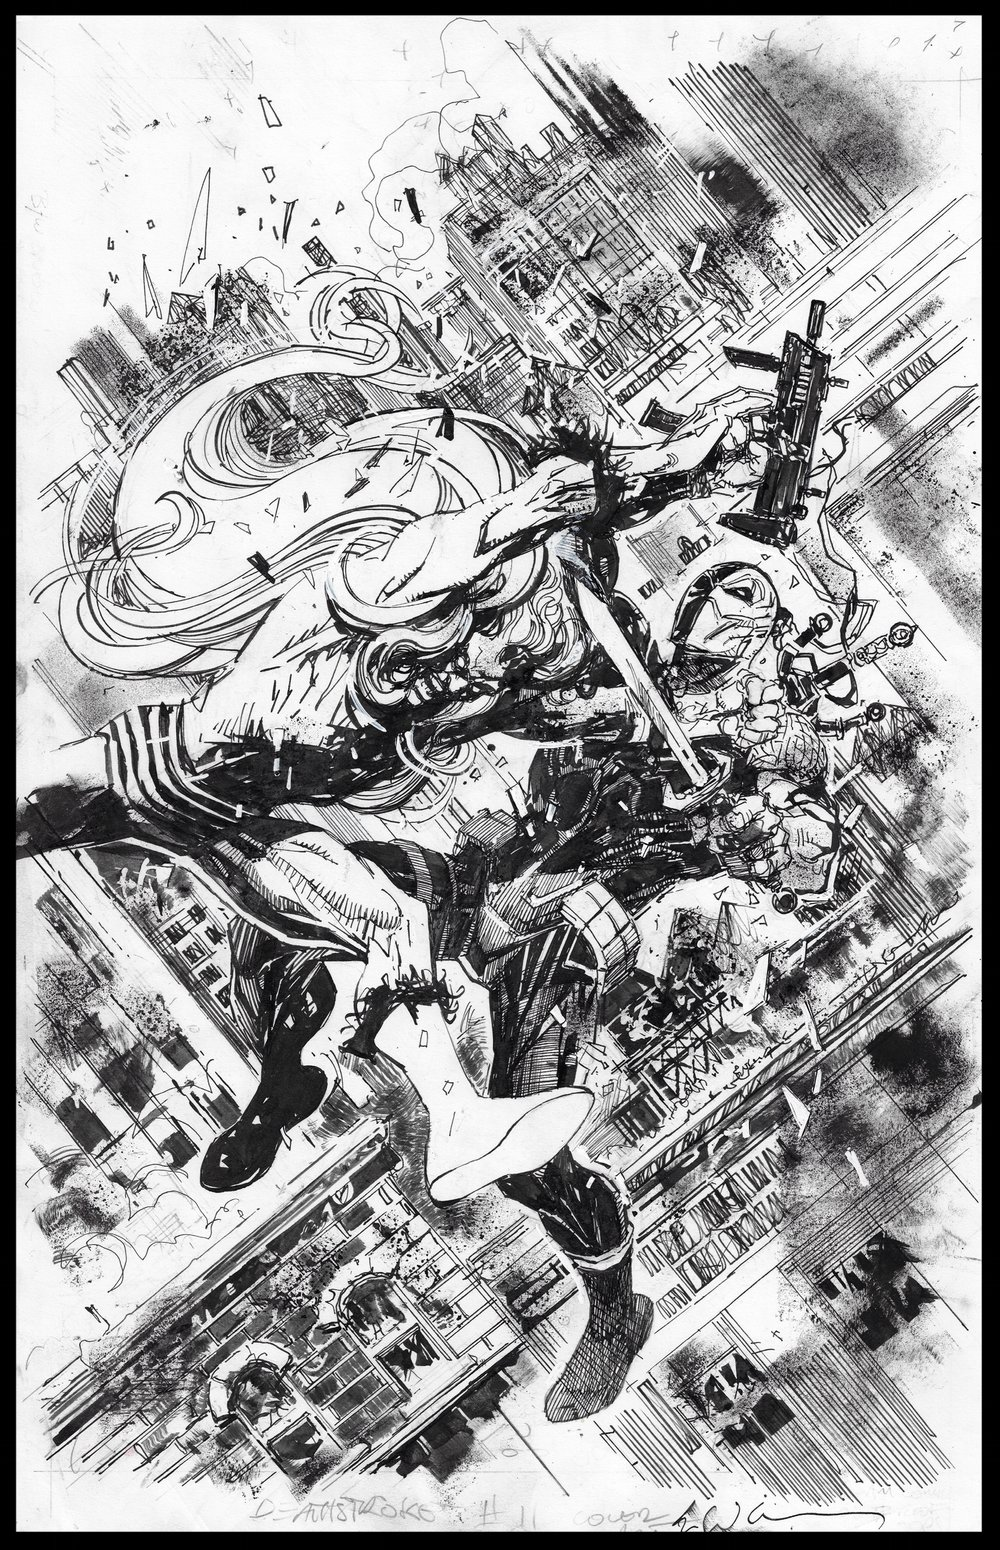 Deathstroke #11 - Cover - Pencils & Inks